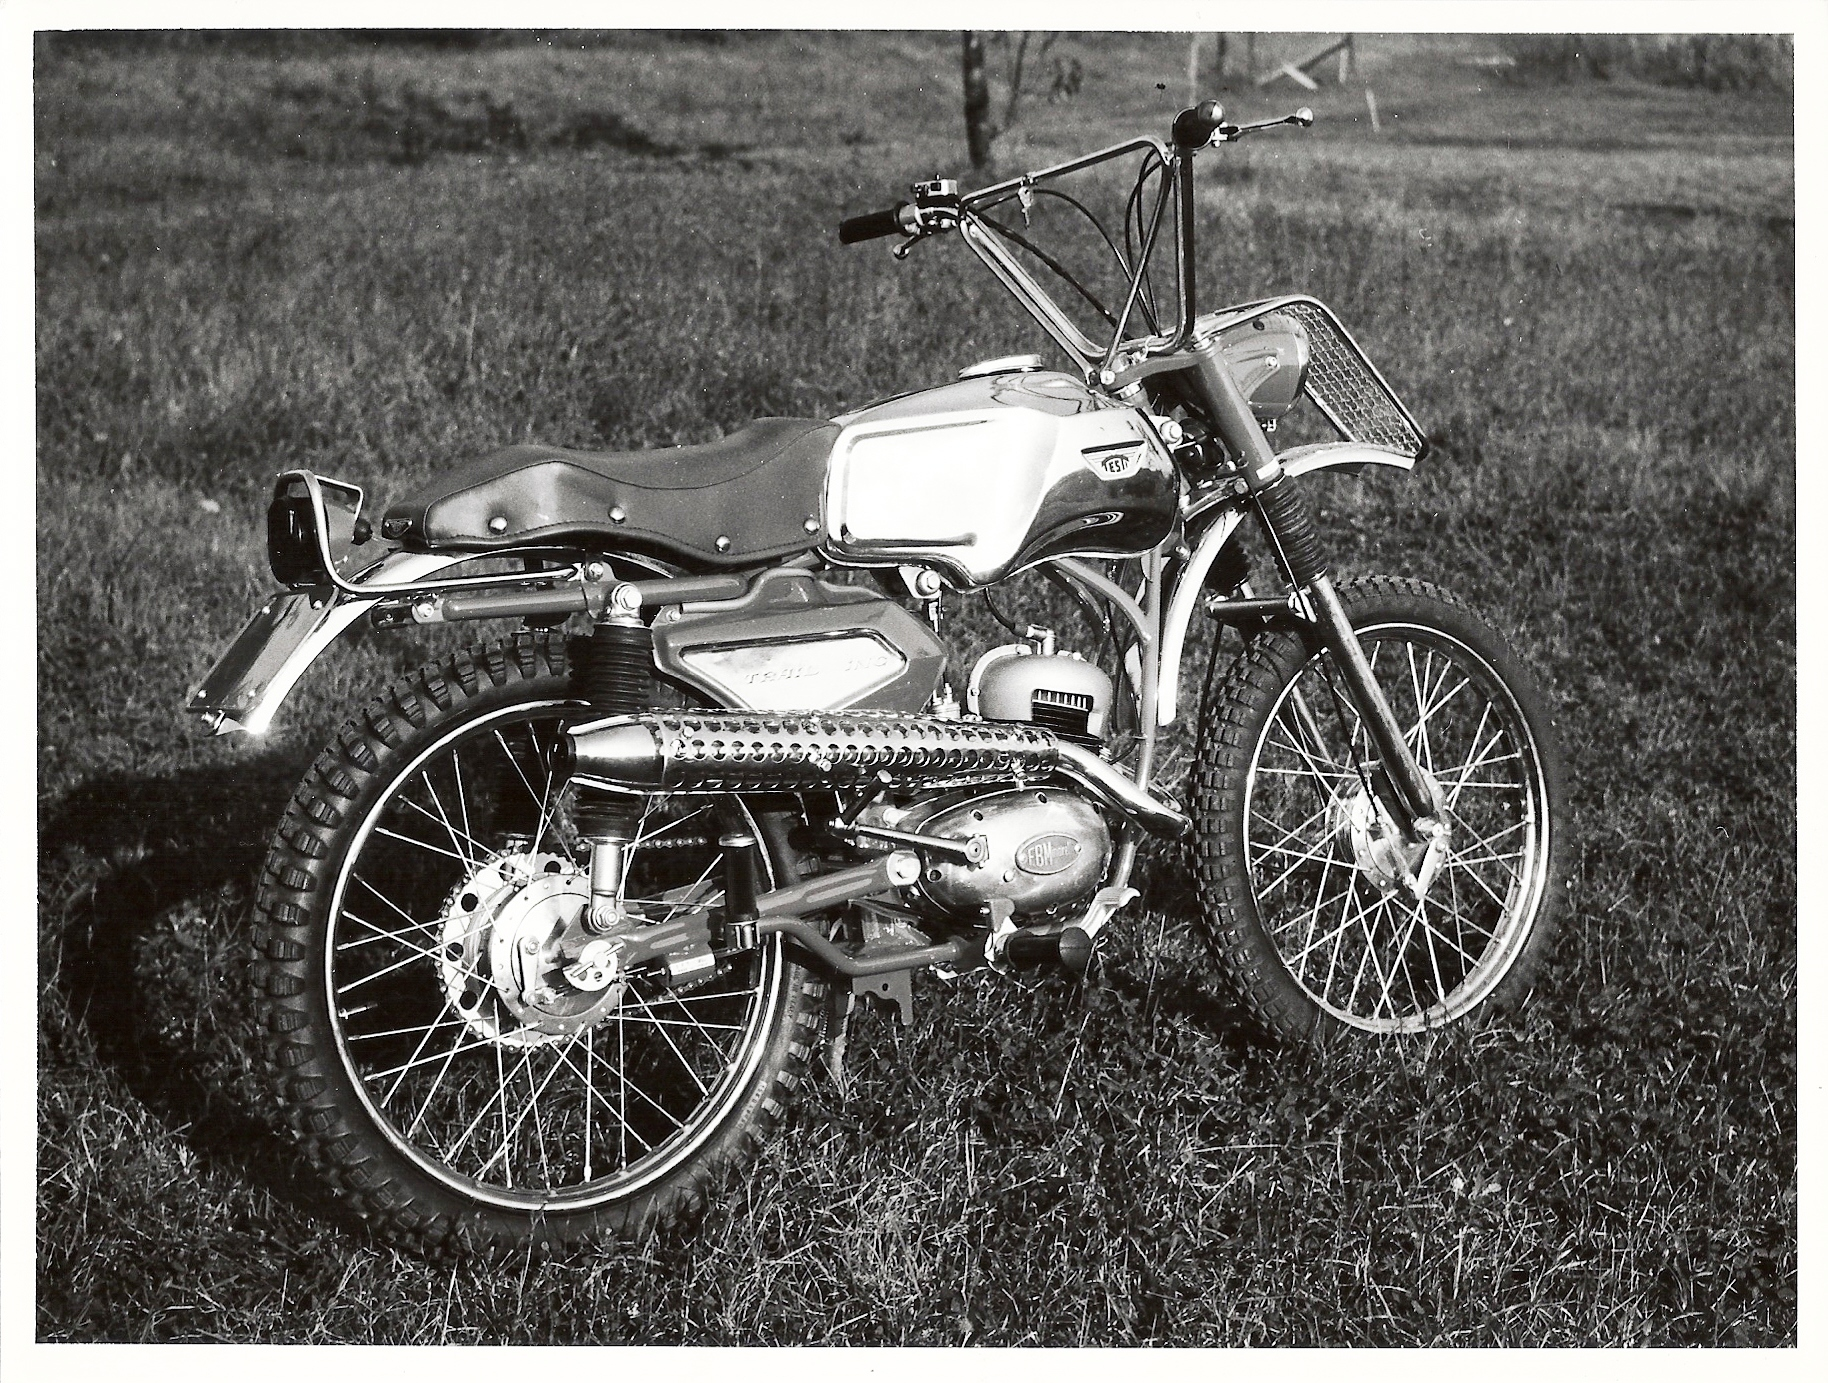 1965 - Testi Trail King - depliant